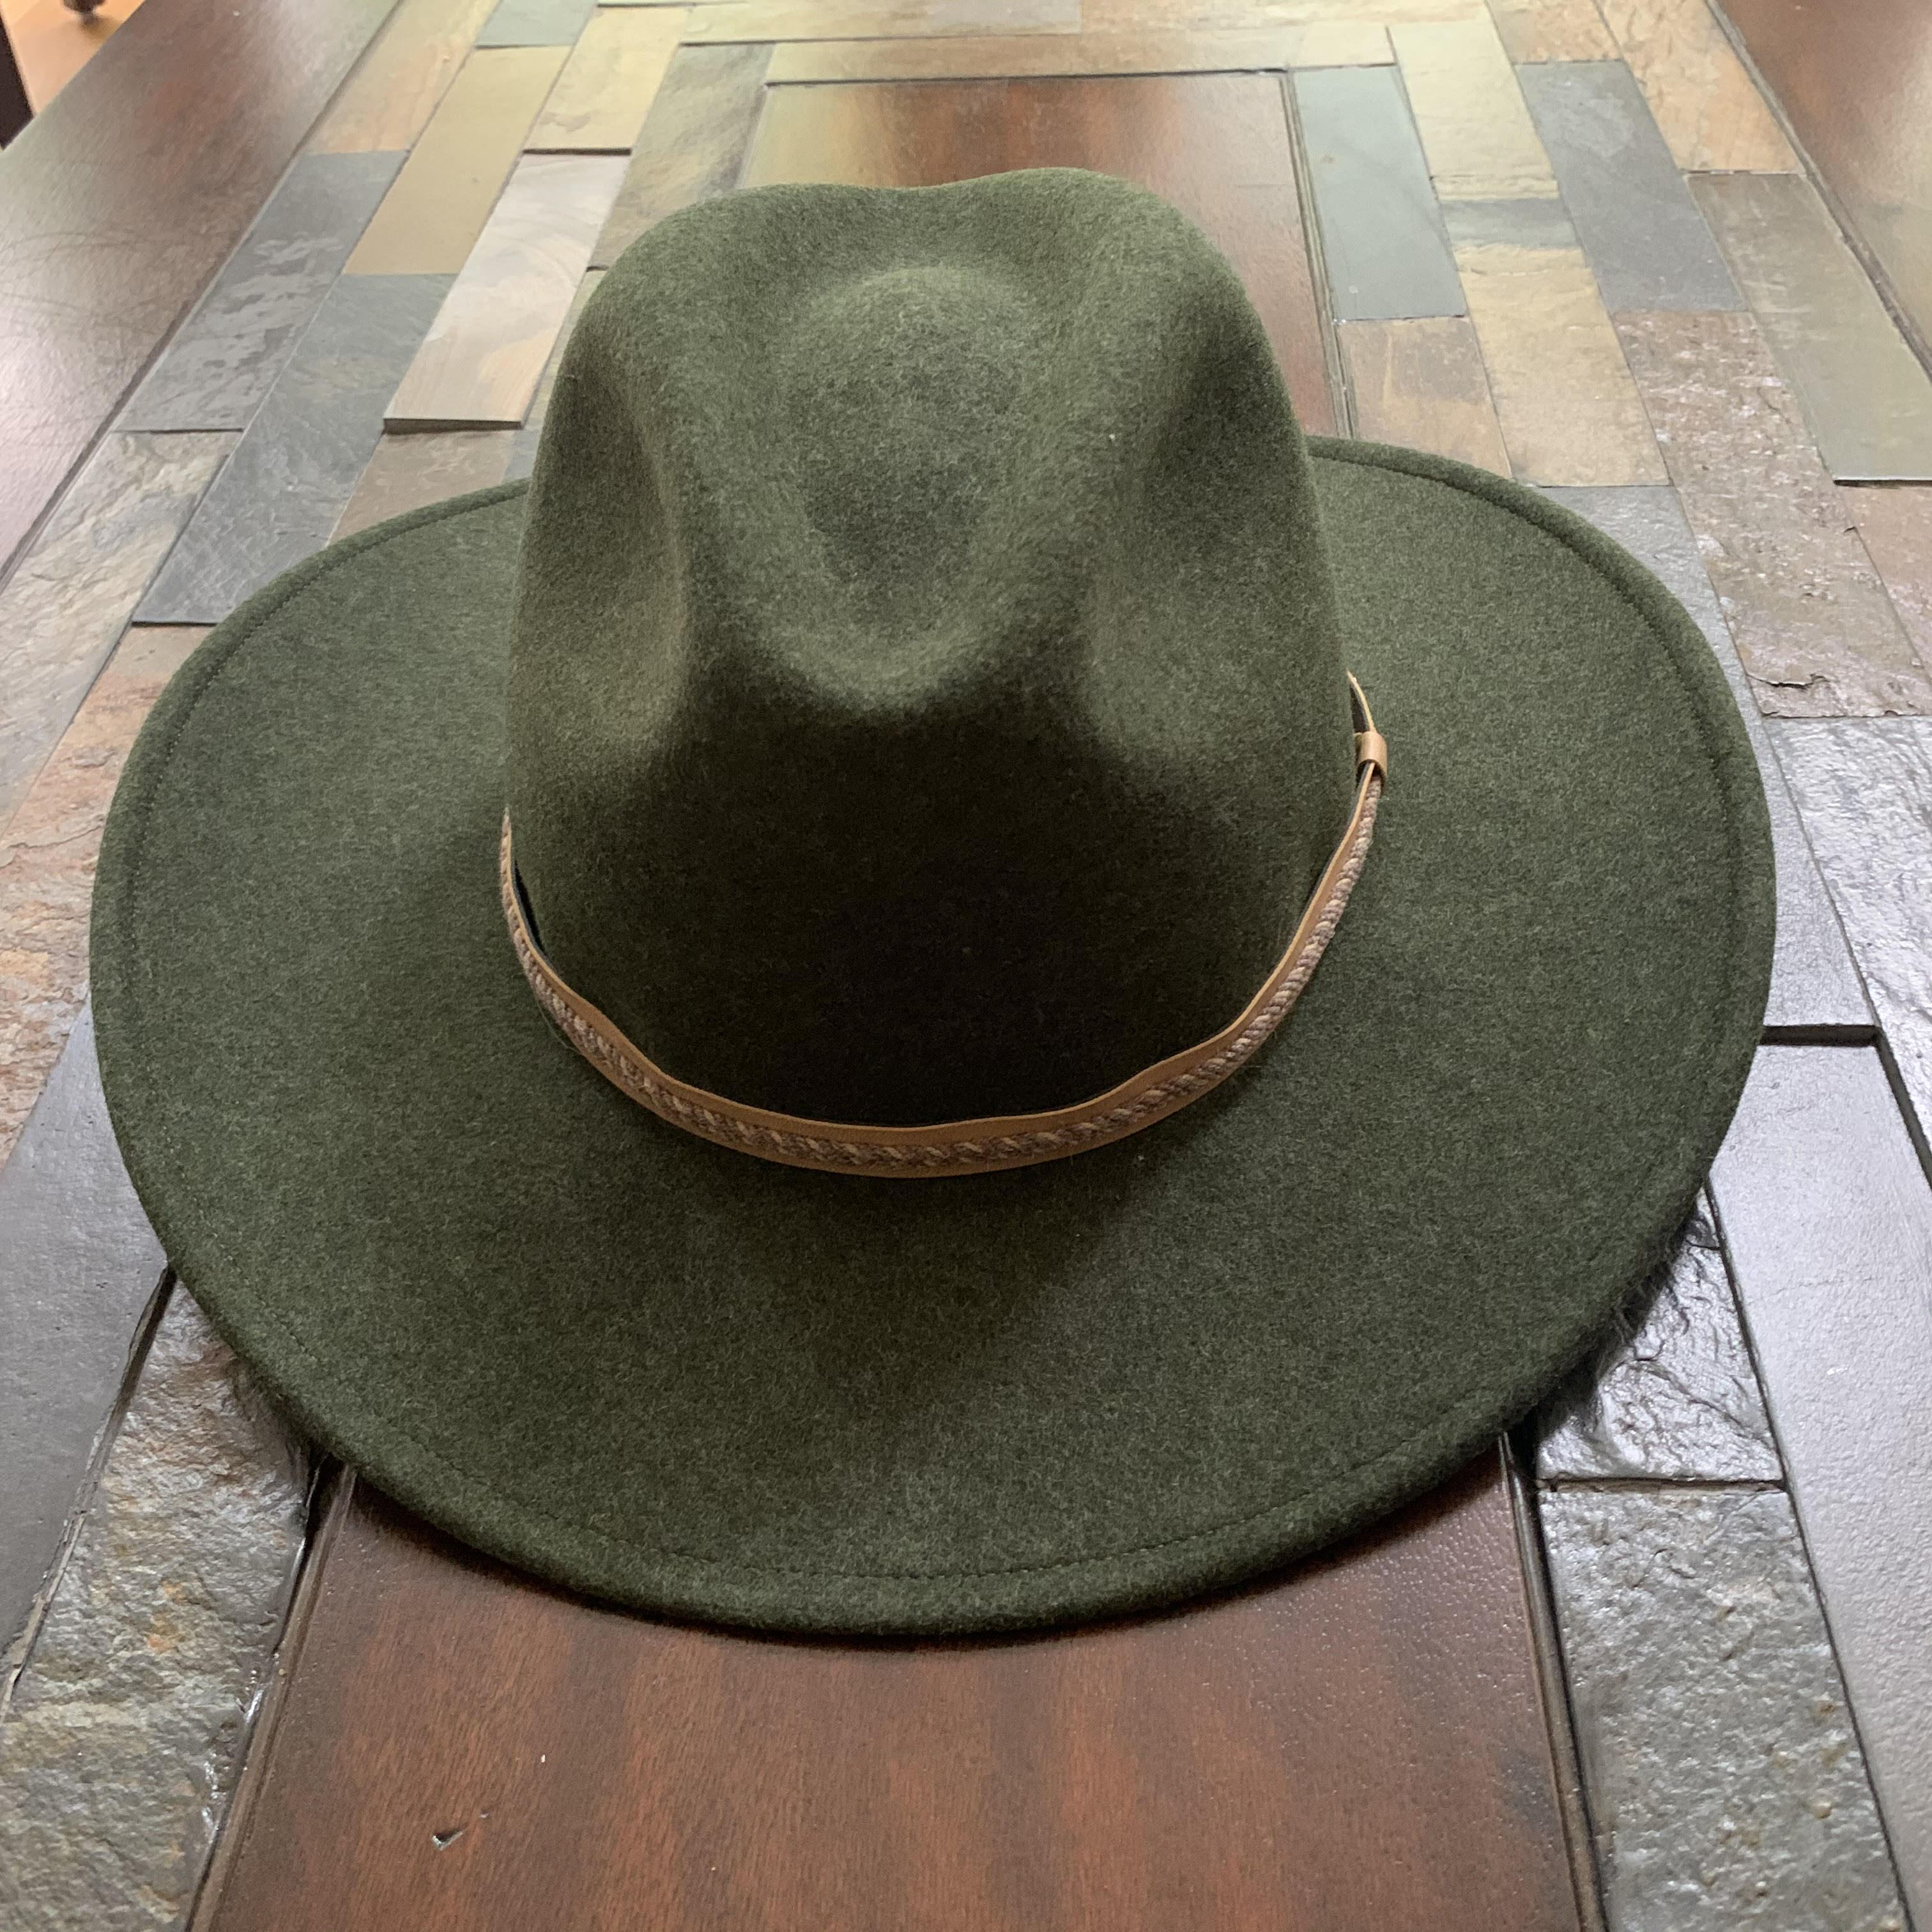 Stetson pindale crushable hat